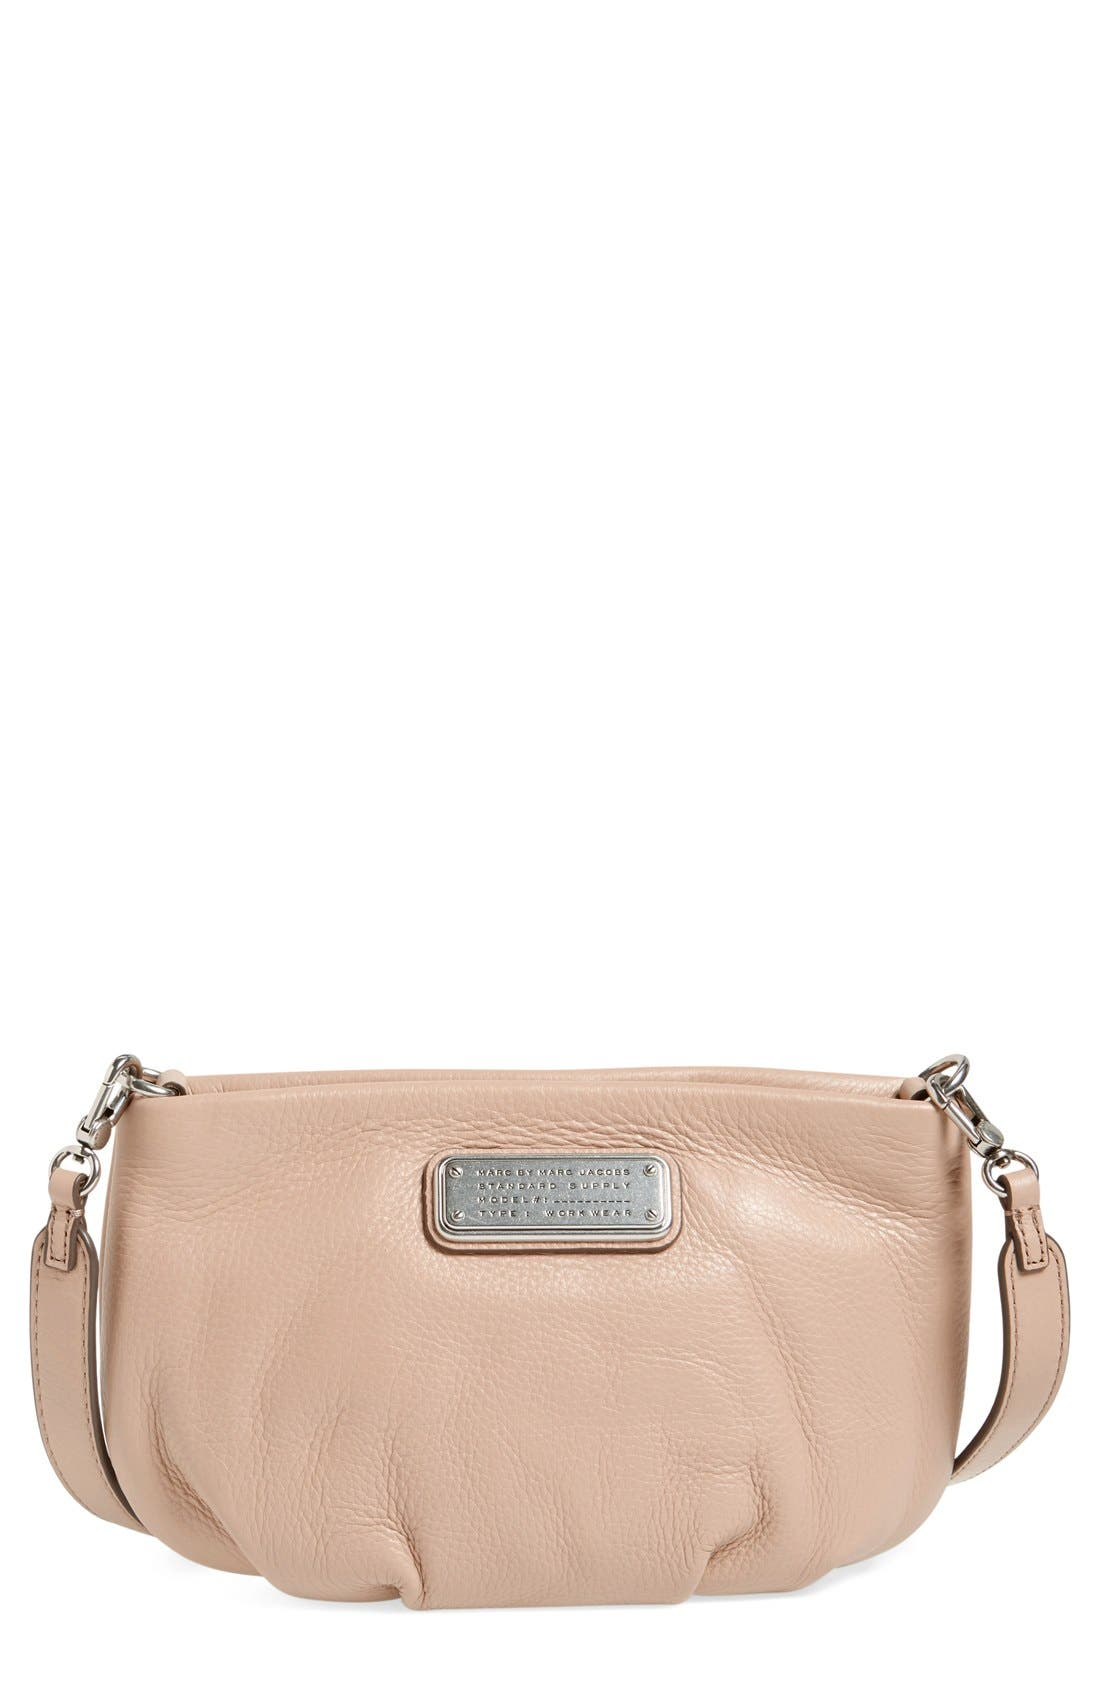 Alternate Image 1 Selected - MARC BY MARC JACOBS 'New Q - Percy' Leather Crossbody Bag